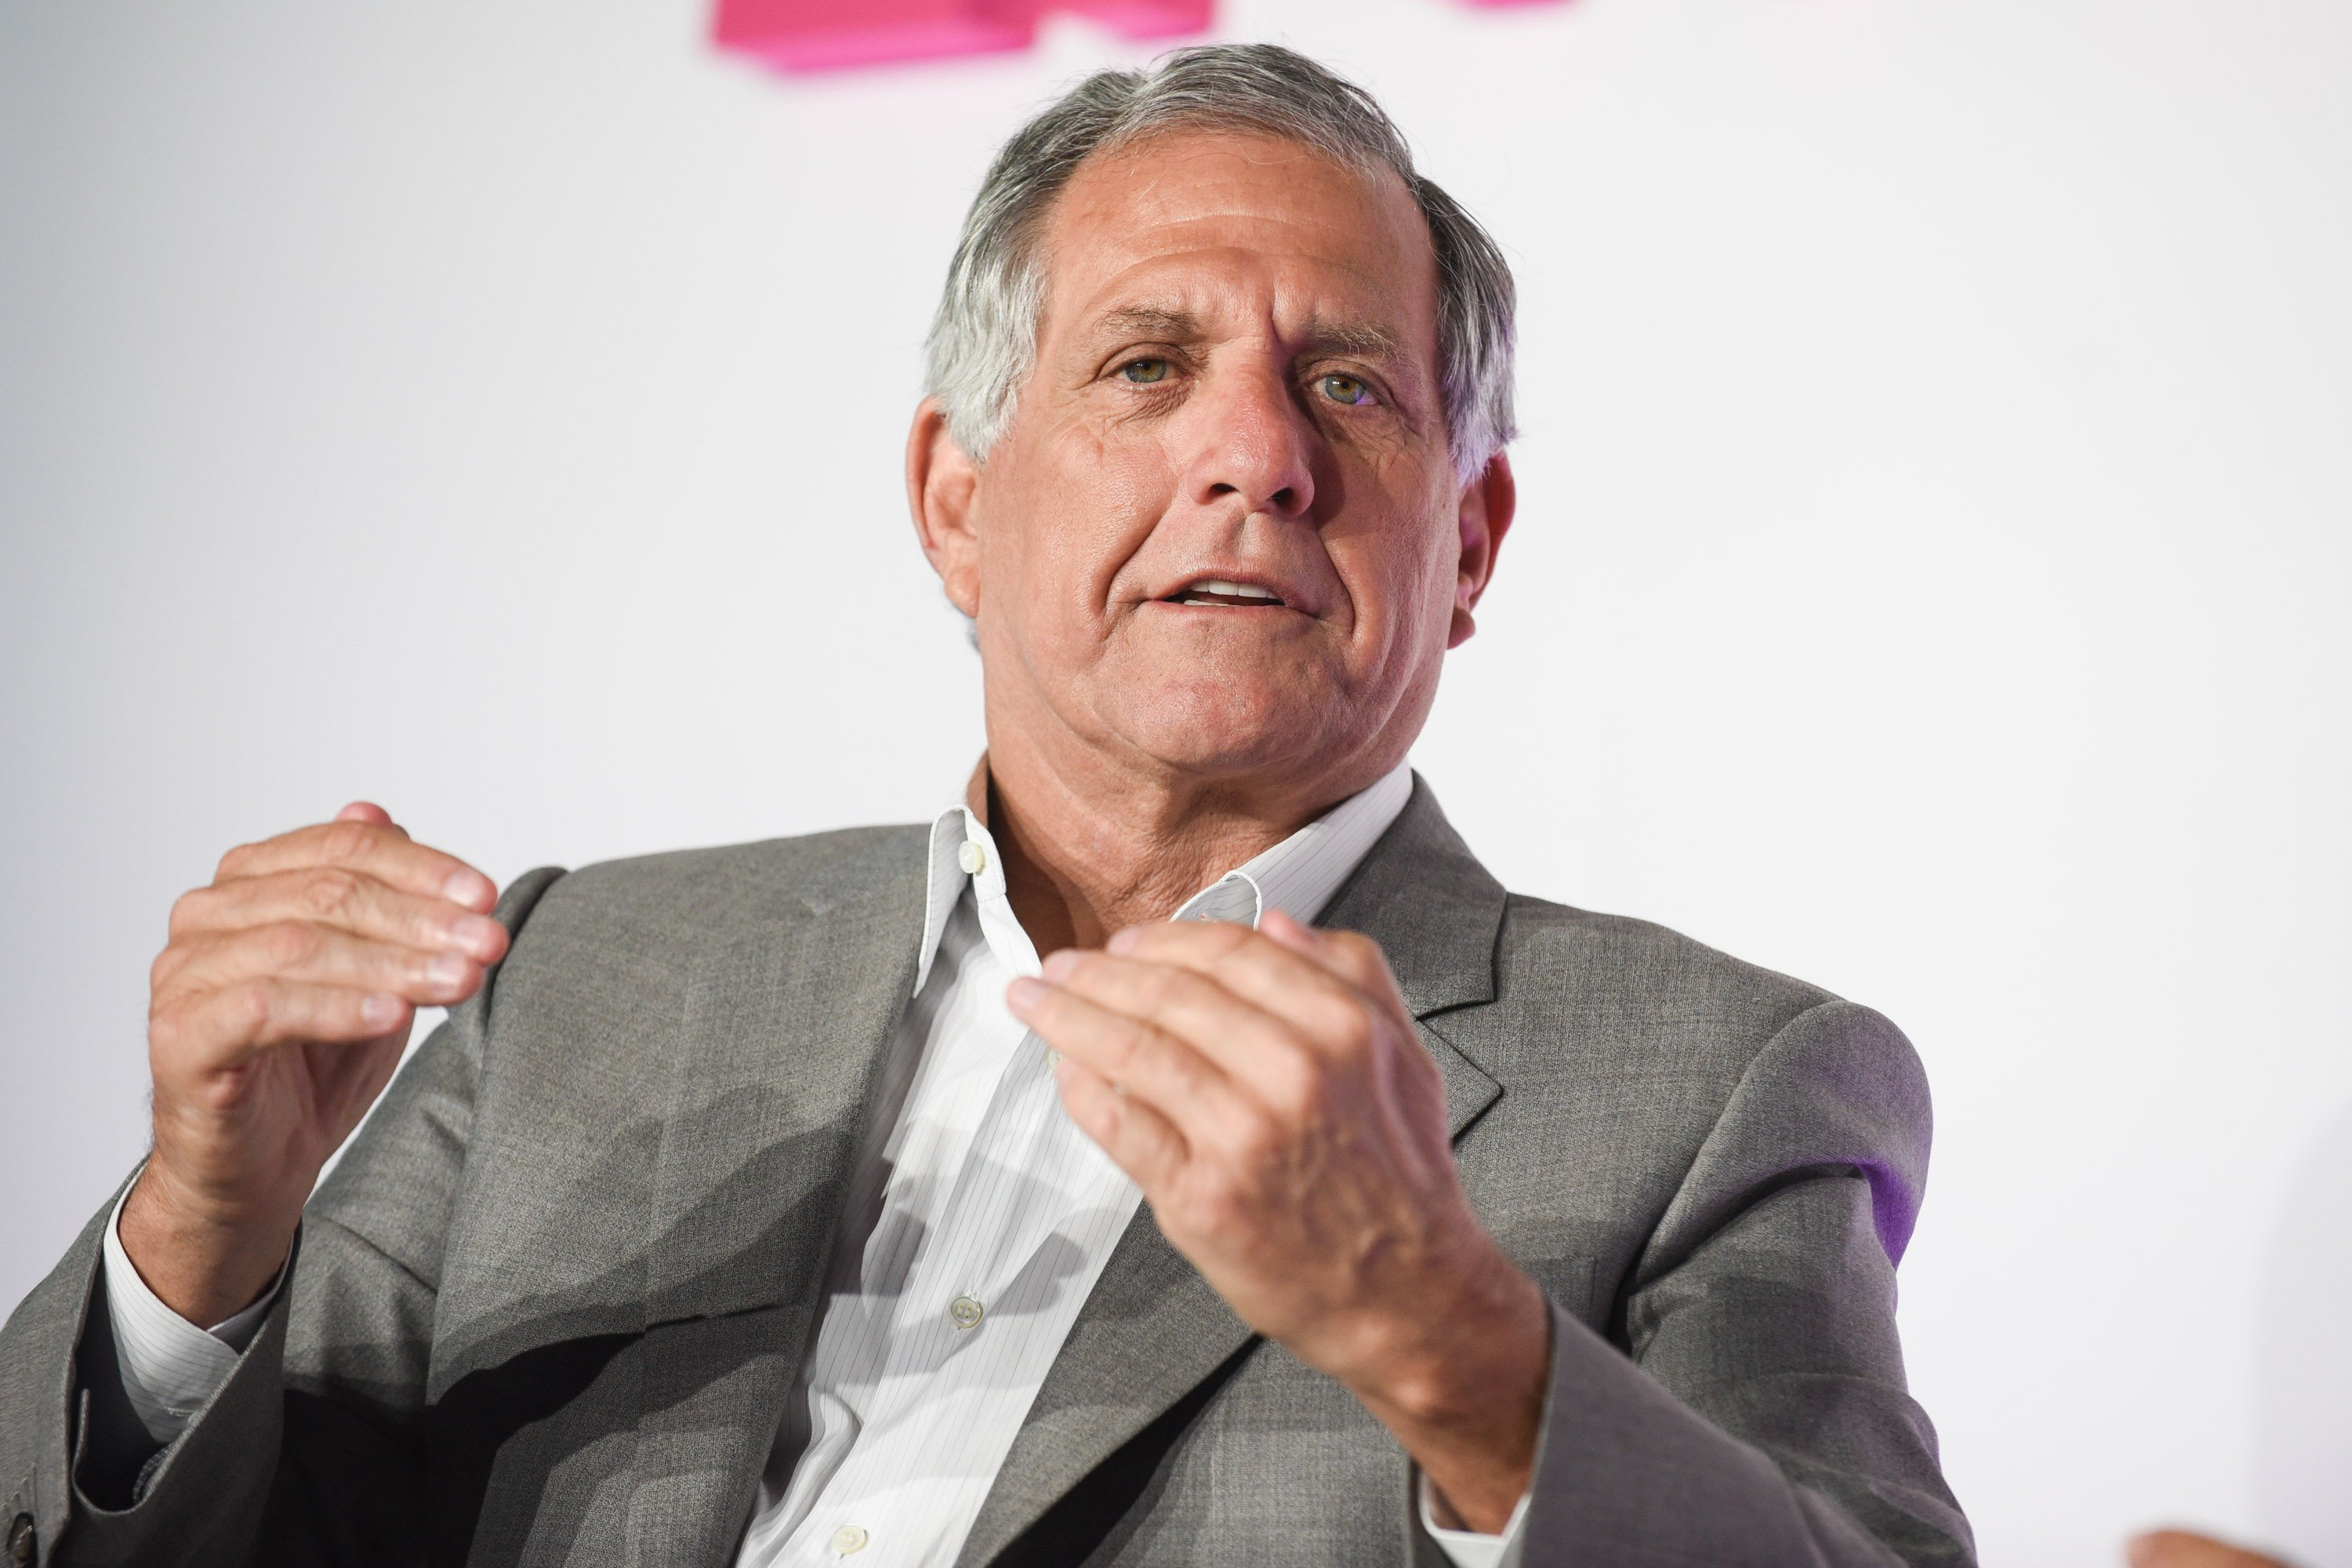 First lawsuit filed stemming from Les Moonves allegations